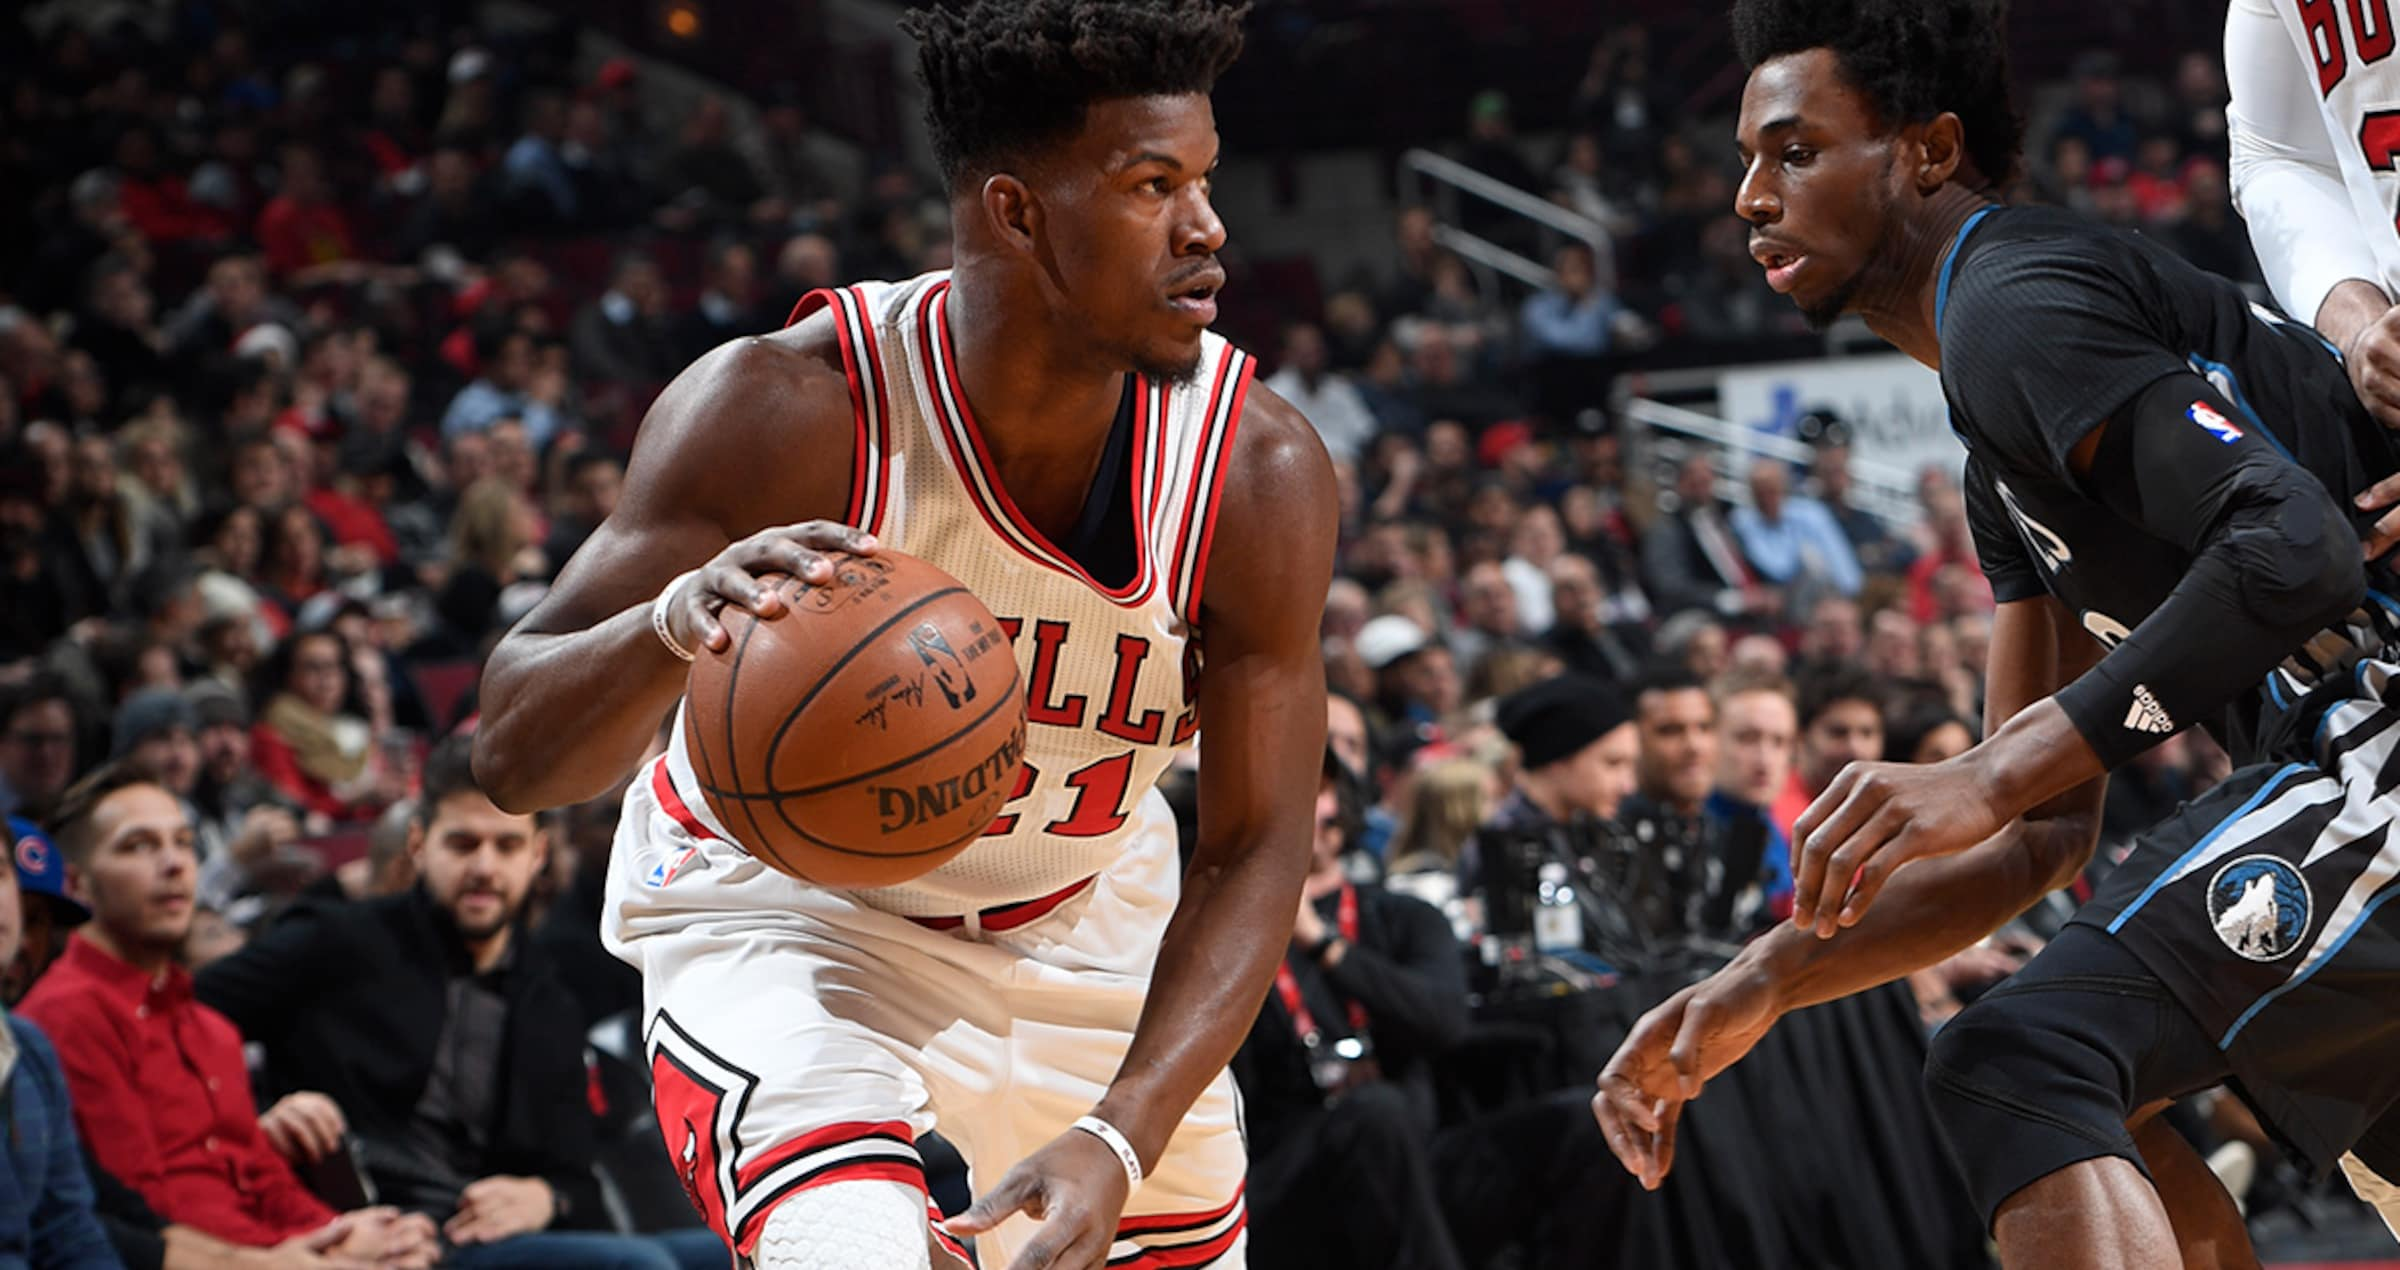 Jimmy Butler vs. Timberwolves